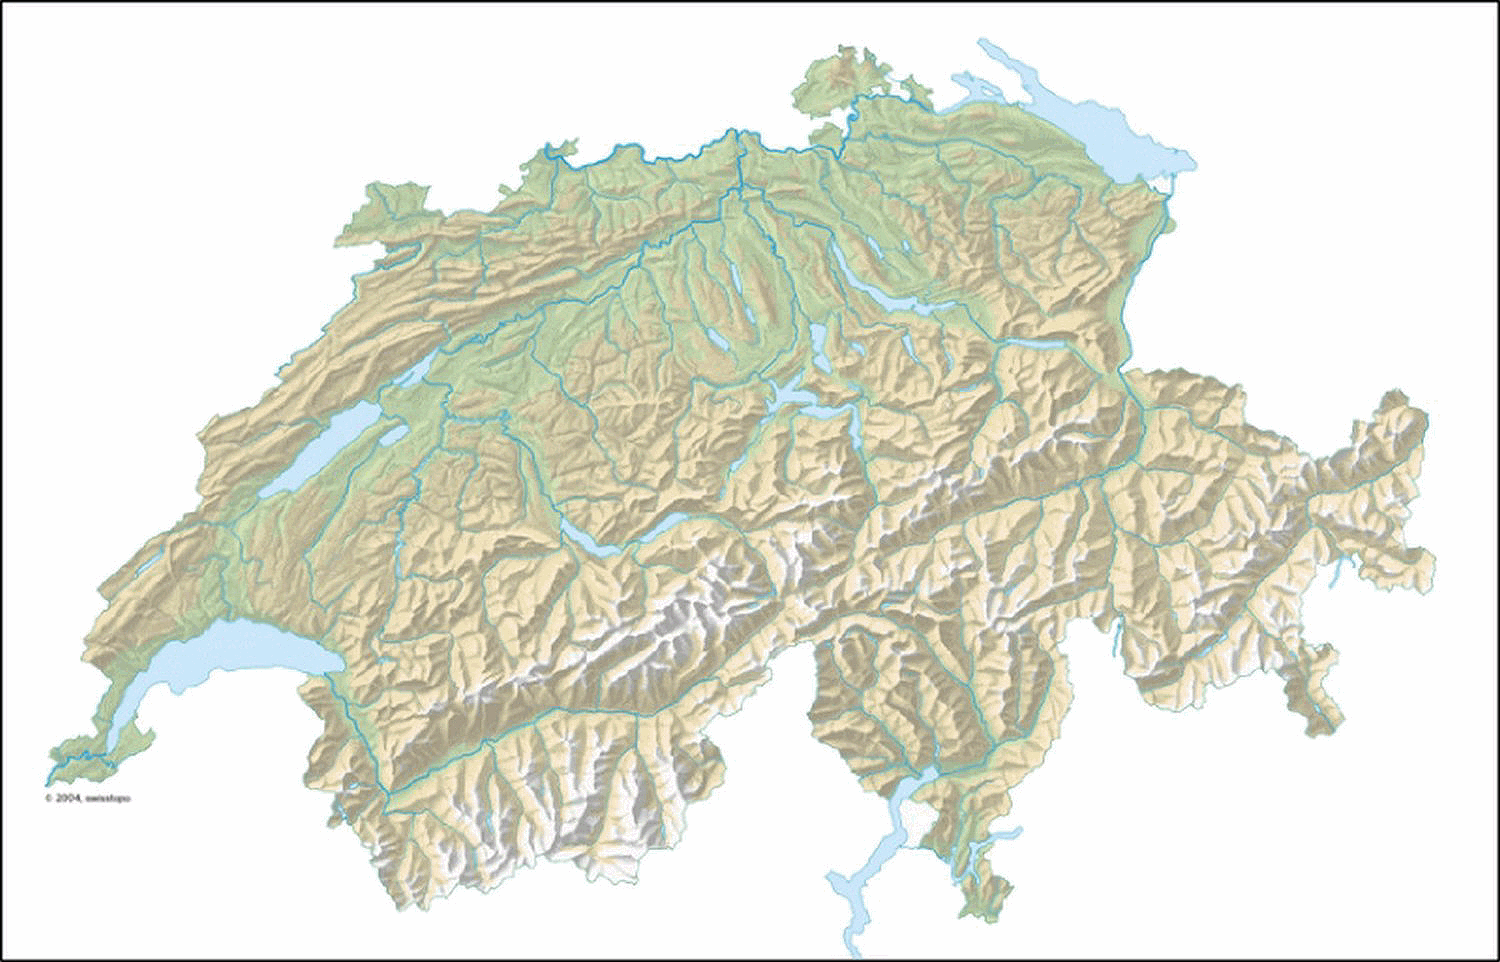 Carte Suisse.File Suisse Geographique Png Wikimedia Commons